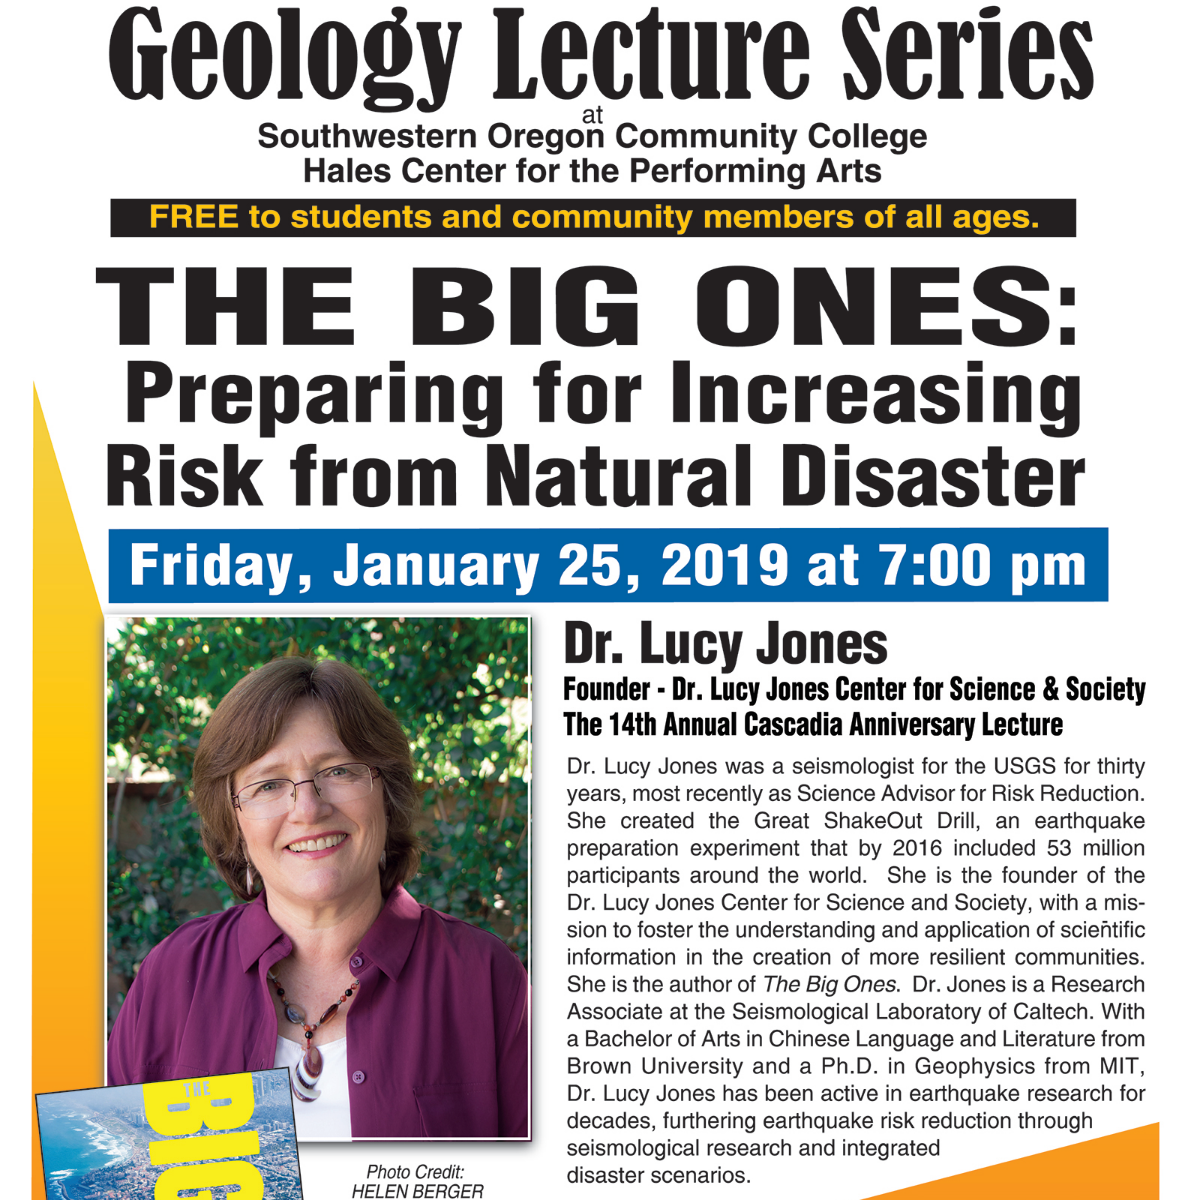 Geology Lecture Series poster. Photo: SWOCC Geology Dept